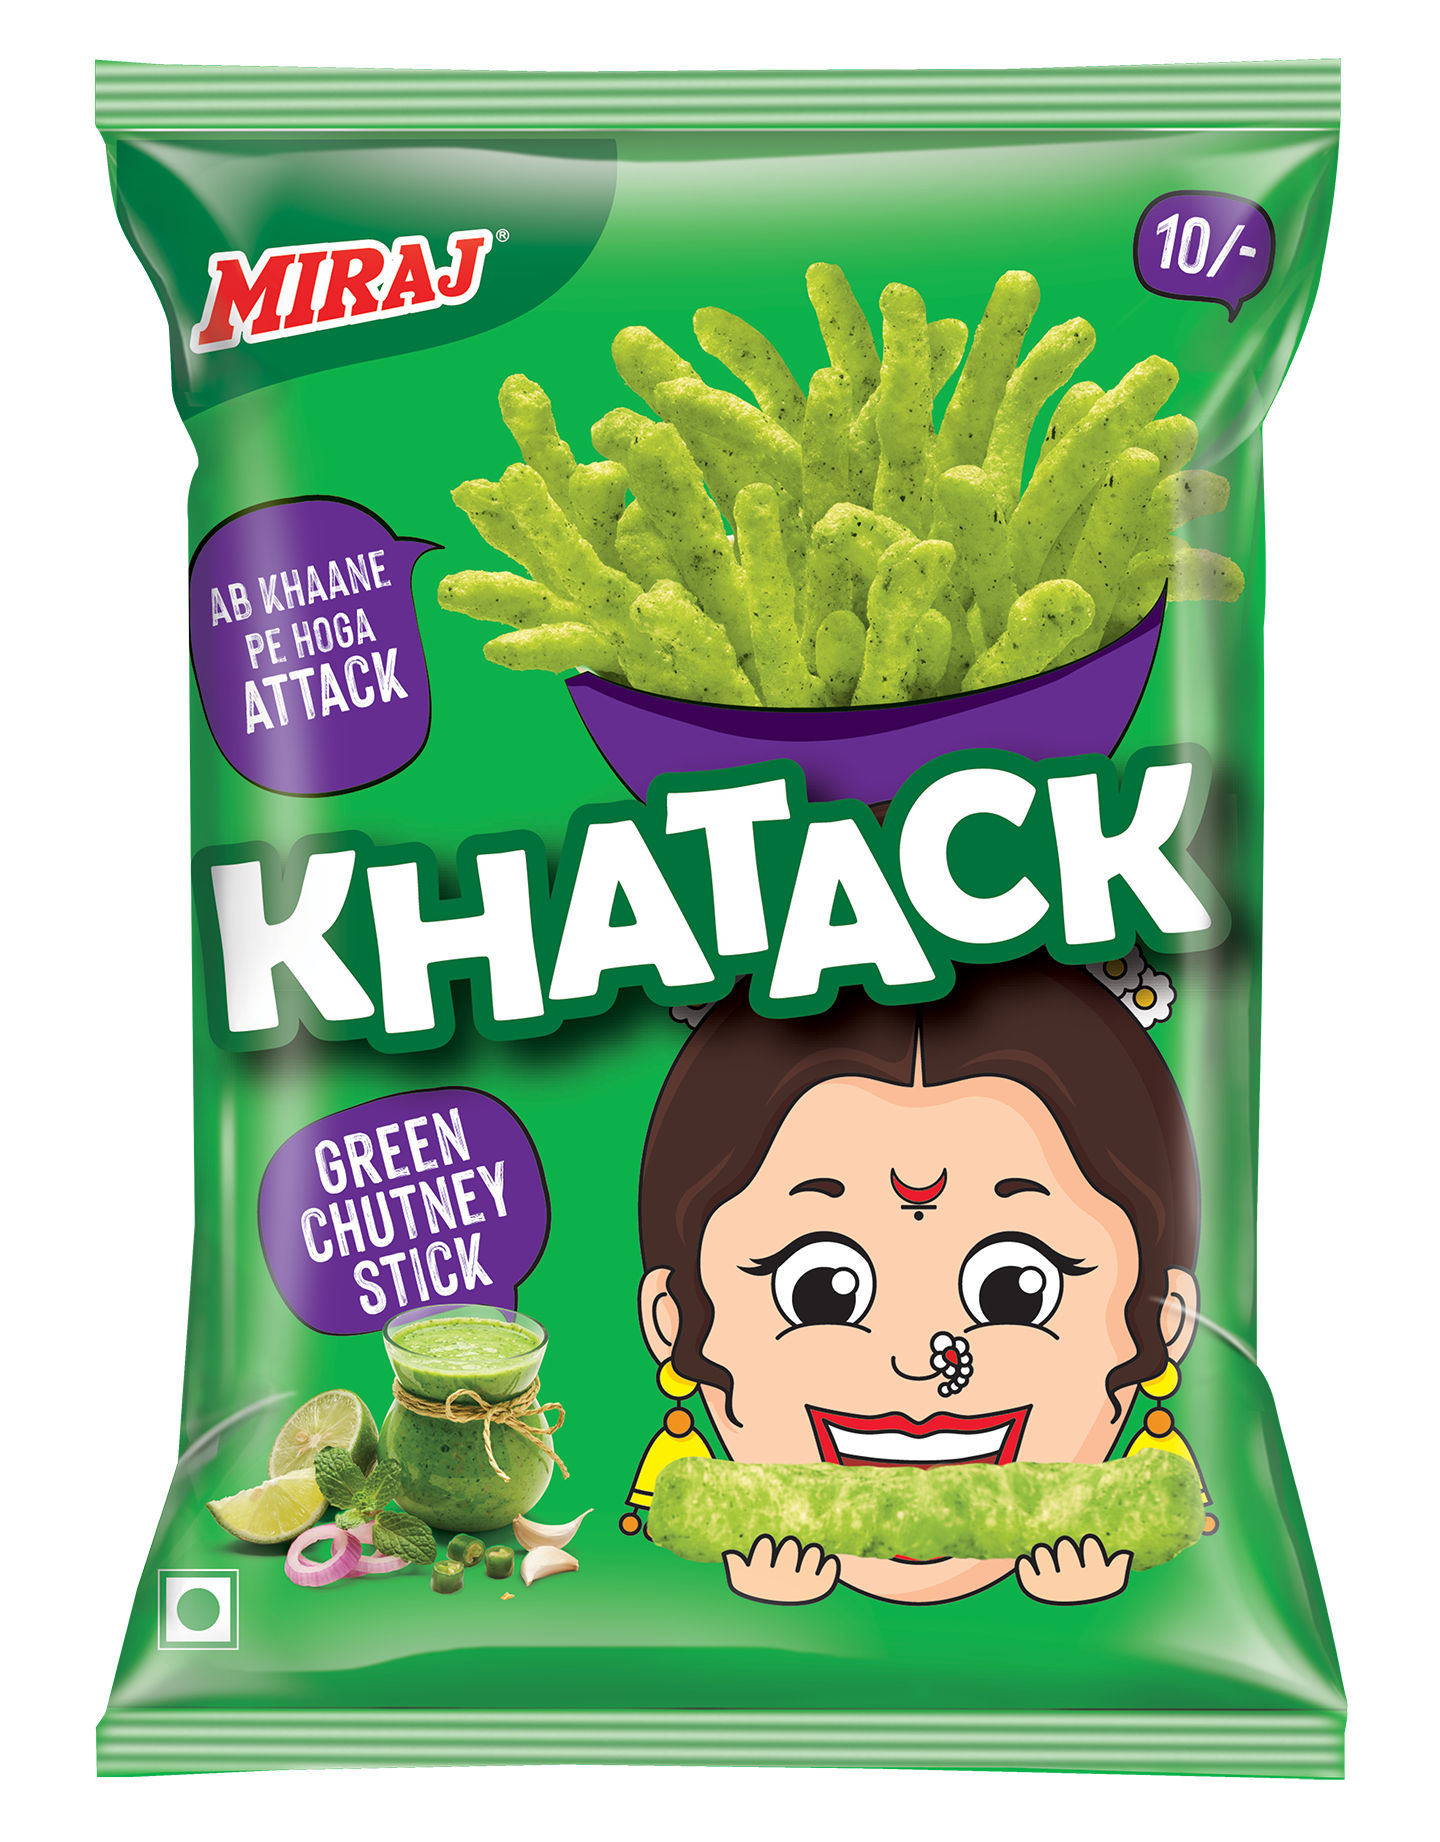 Miraj Khatack Green Chatni Sticks Rs-10